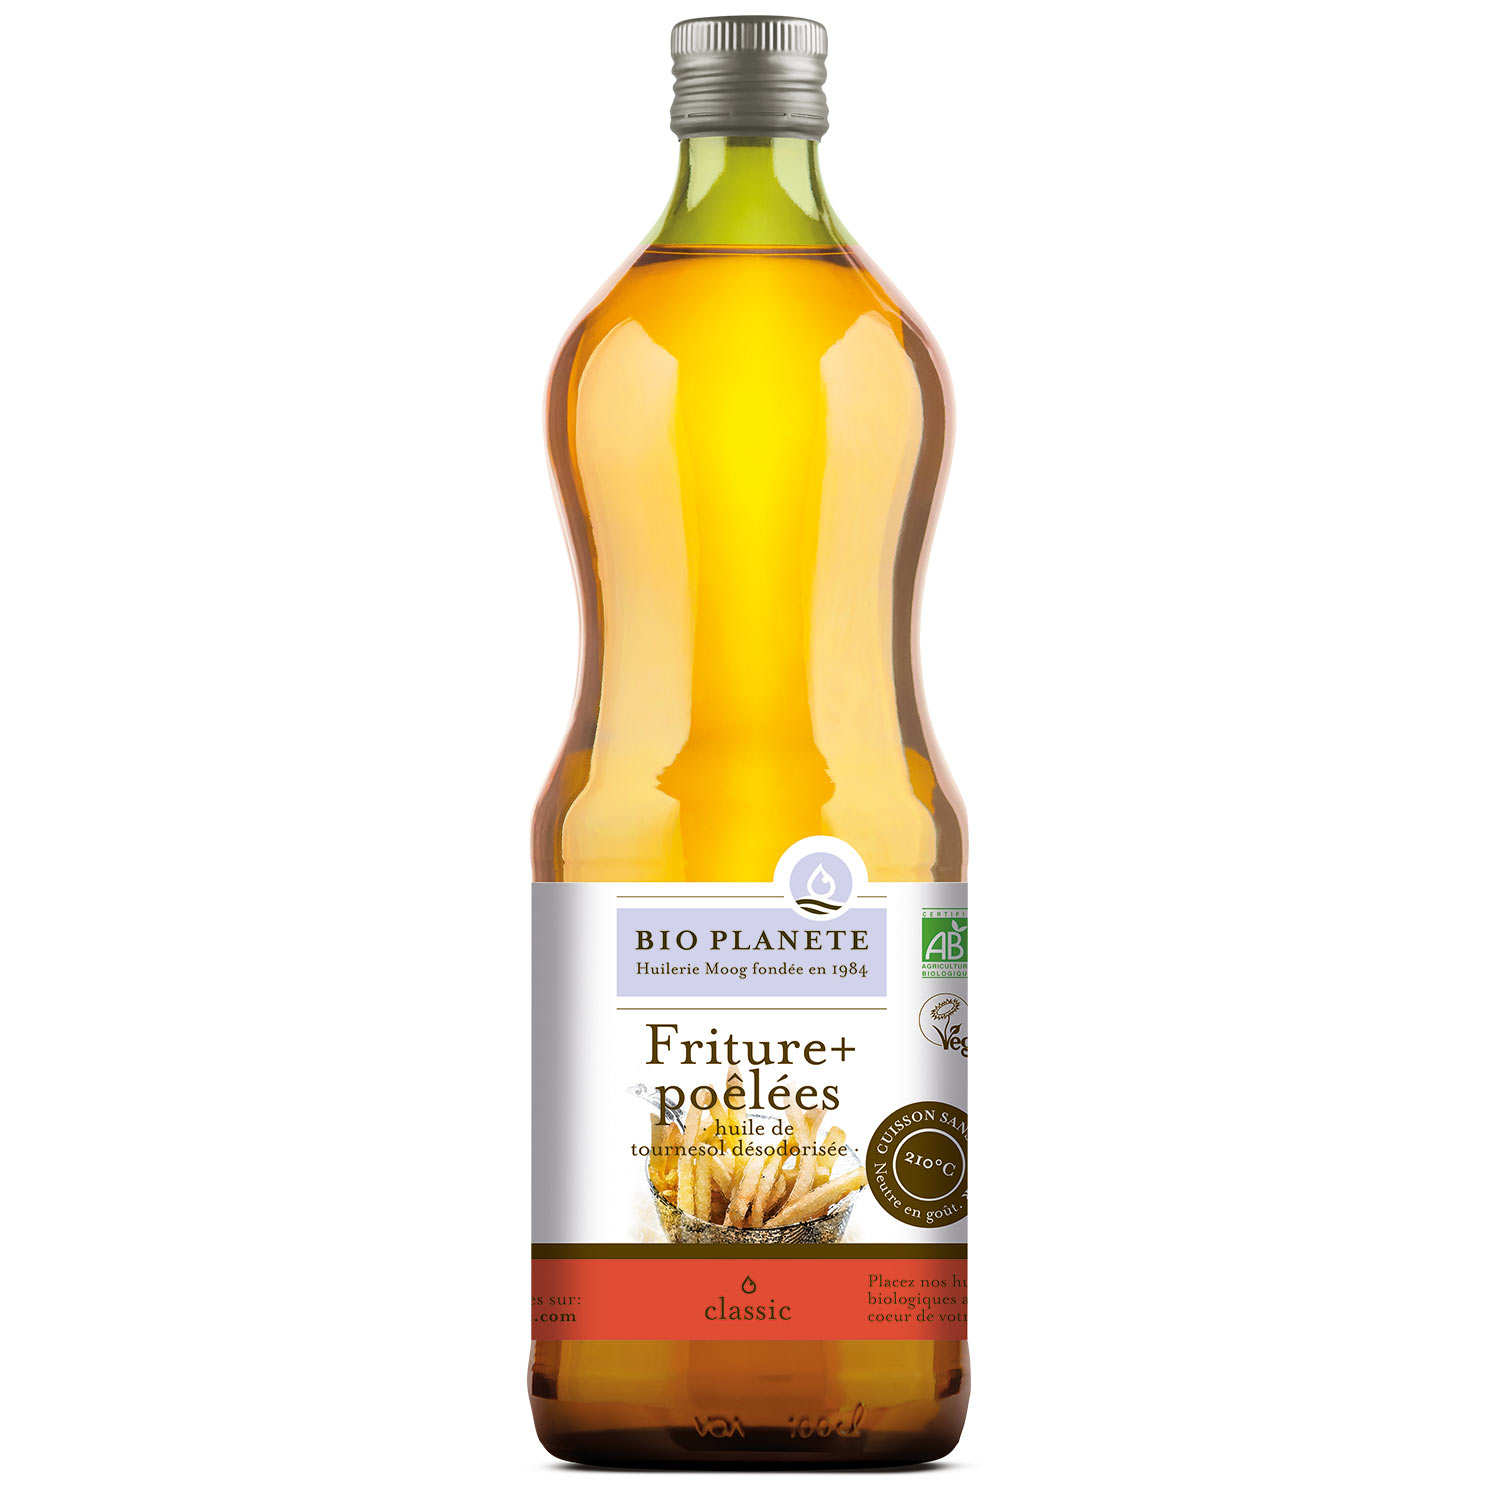 Organic sunflower oil for cooking and frying